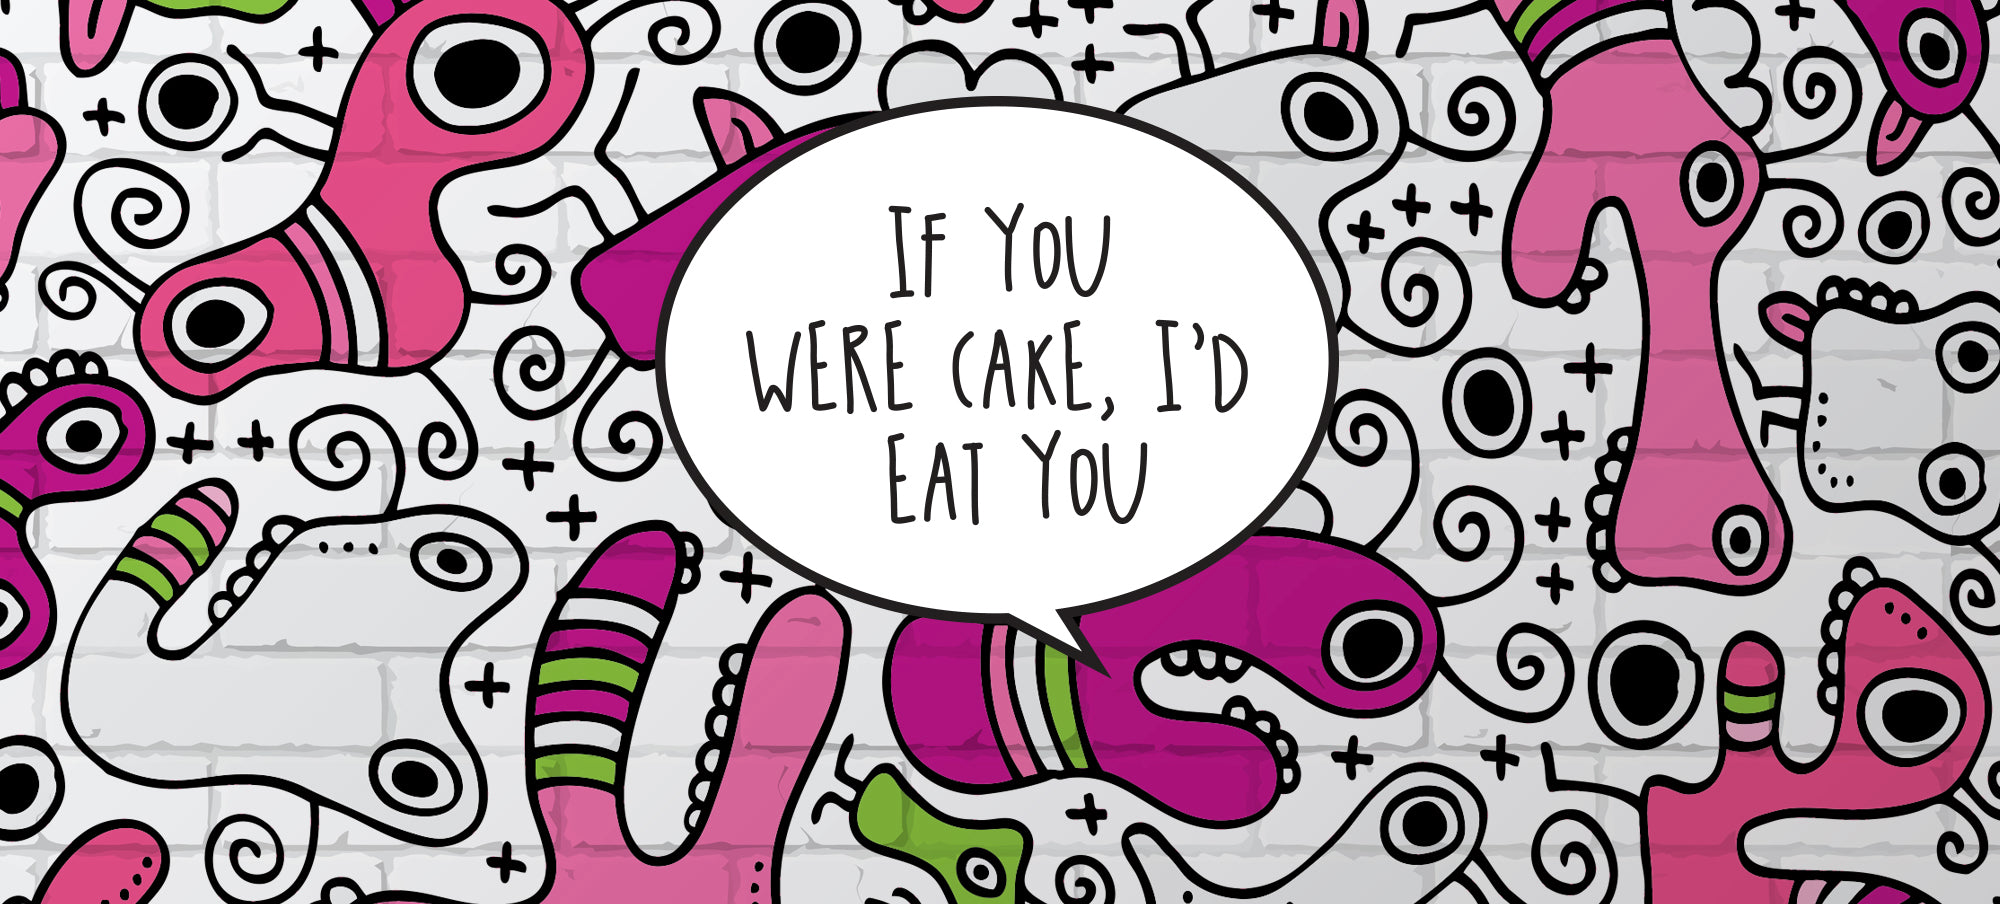 If your were cake, I'd eat you |  Bold AF Blog | Bold Clothing & Headwear